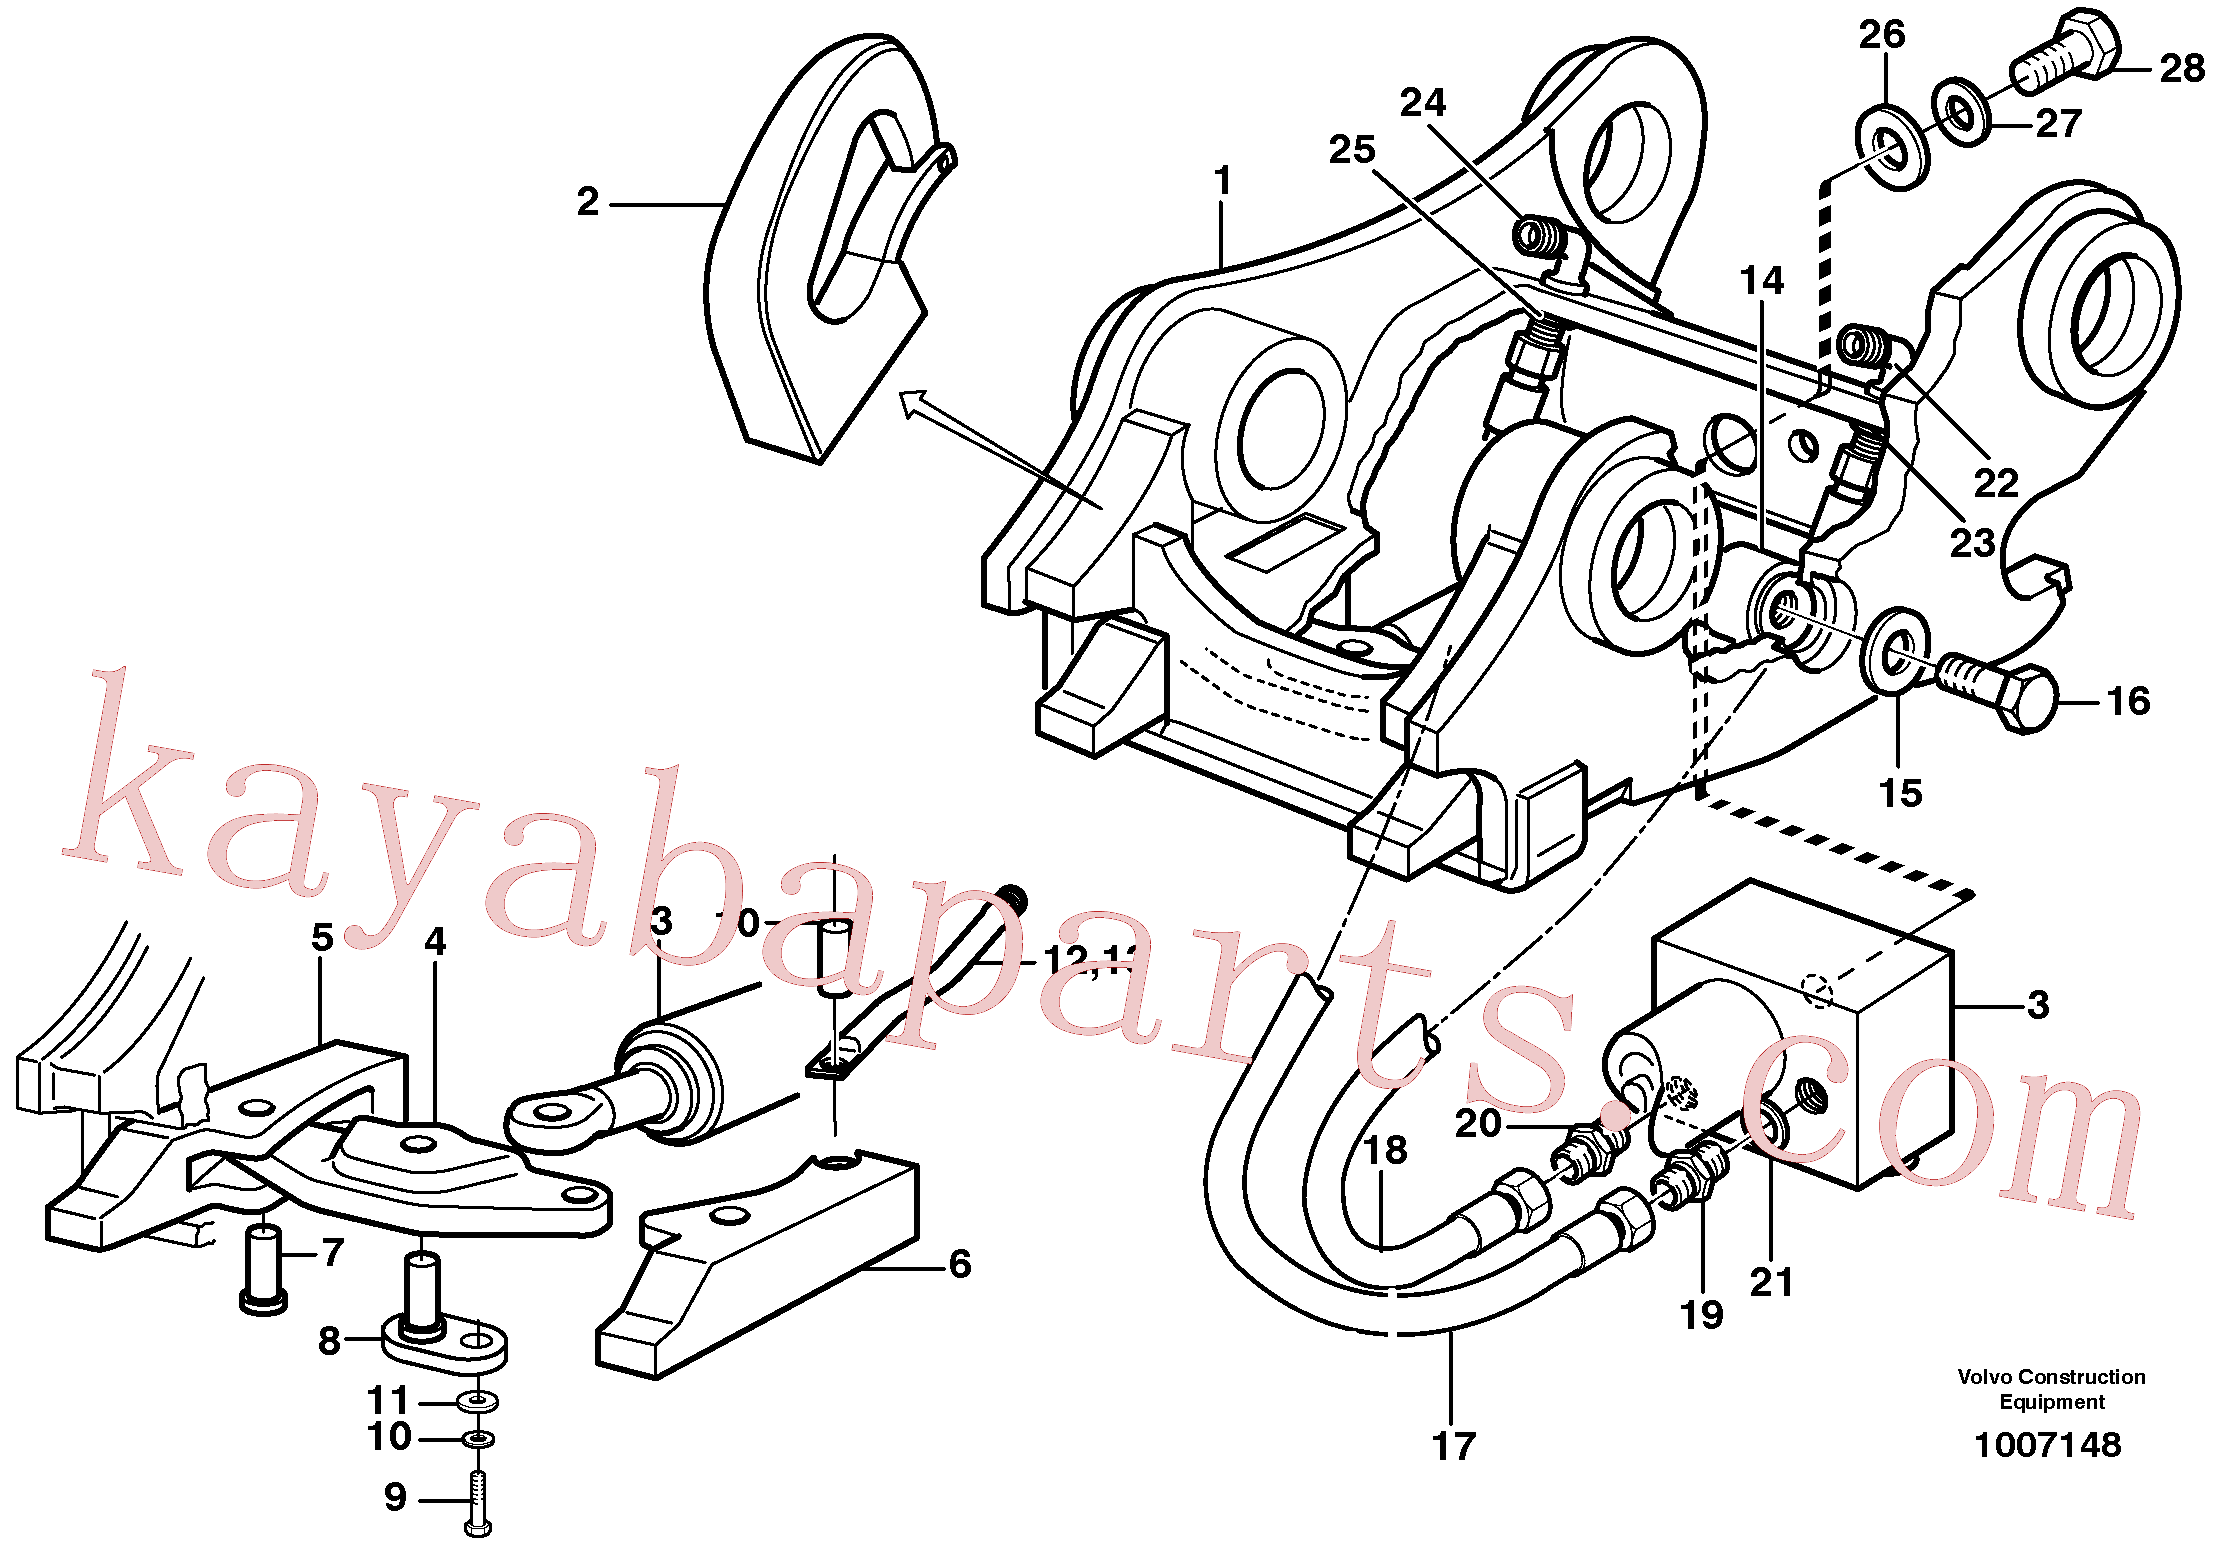 SA1171-75350 for Volvo Quickfit, hydraulic, S6(1007148 assembly)